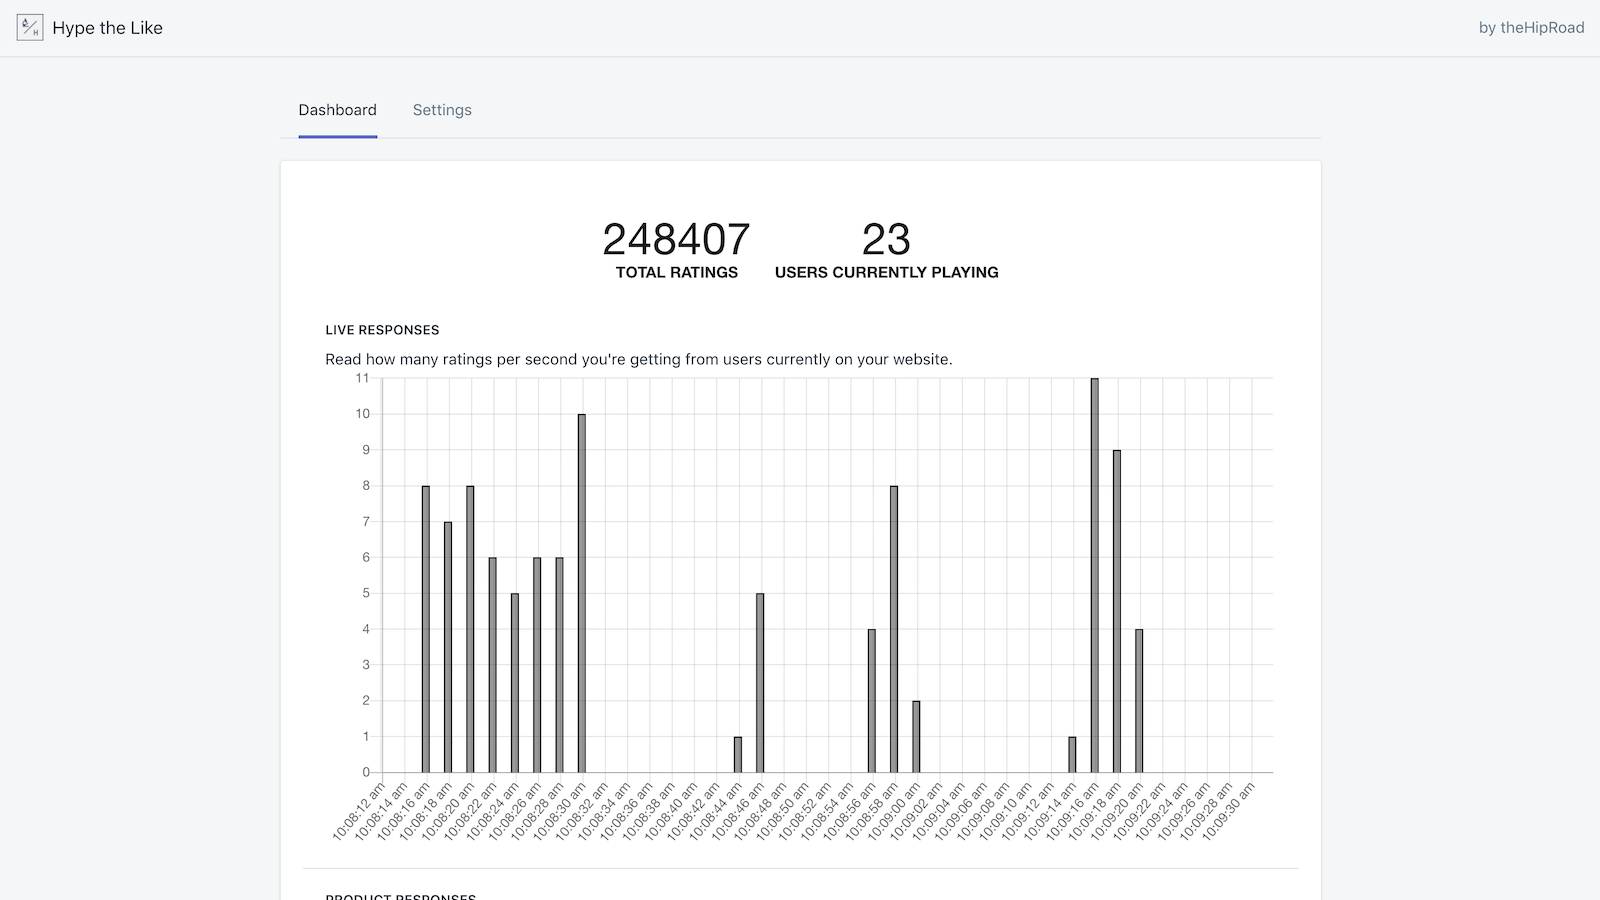 Live realtime analytics relay your user's immediate feedback.